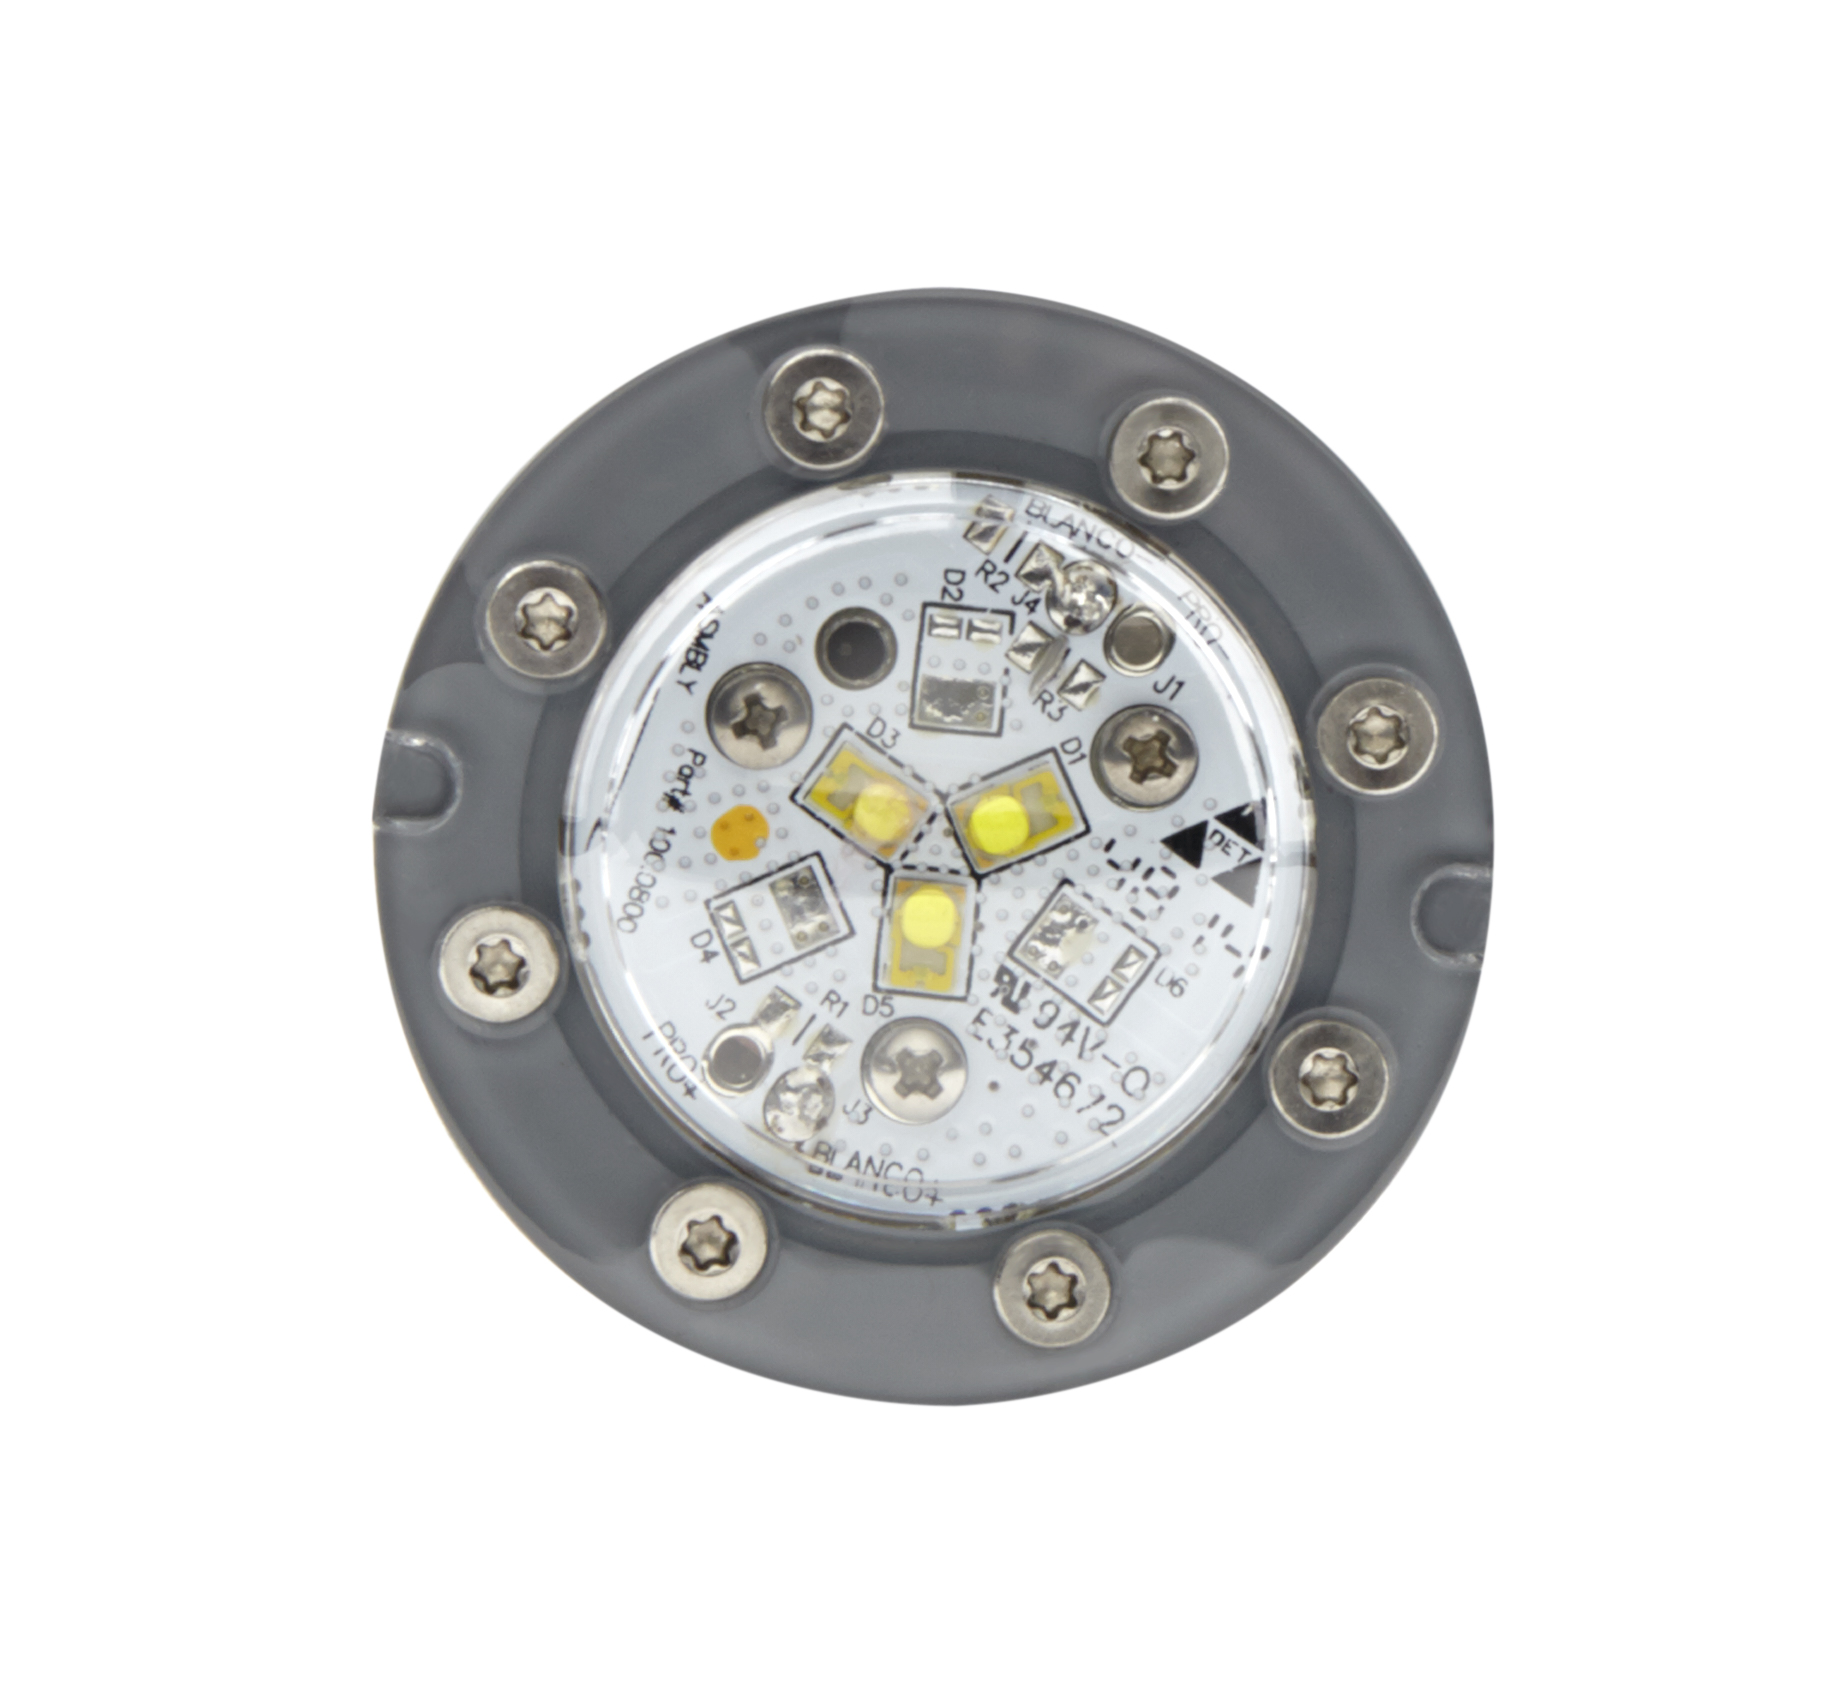 nicheless led pool light